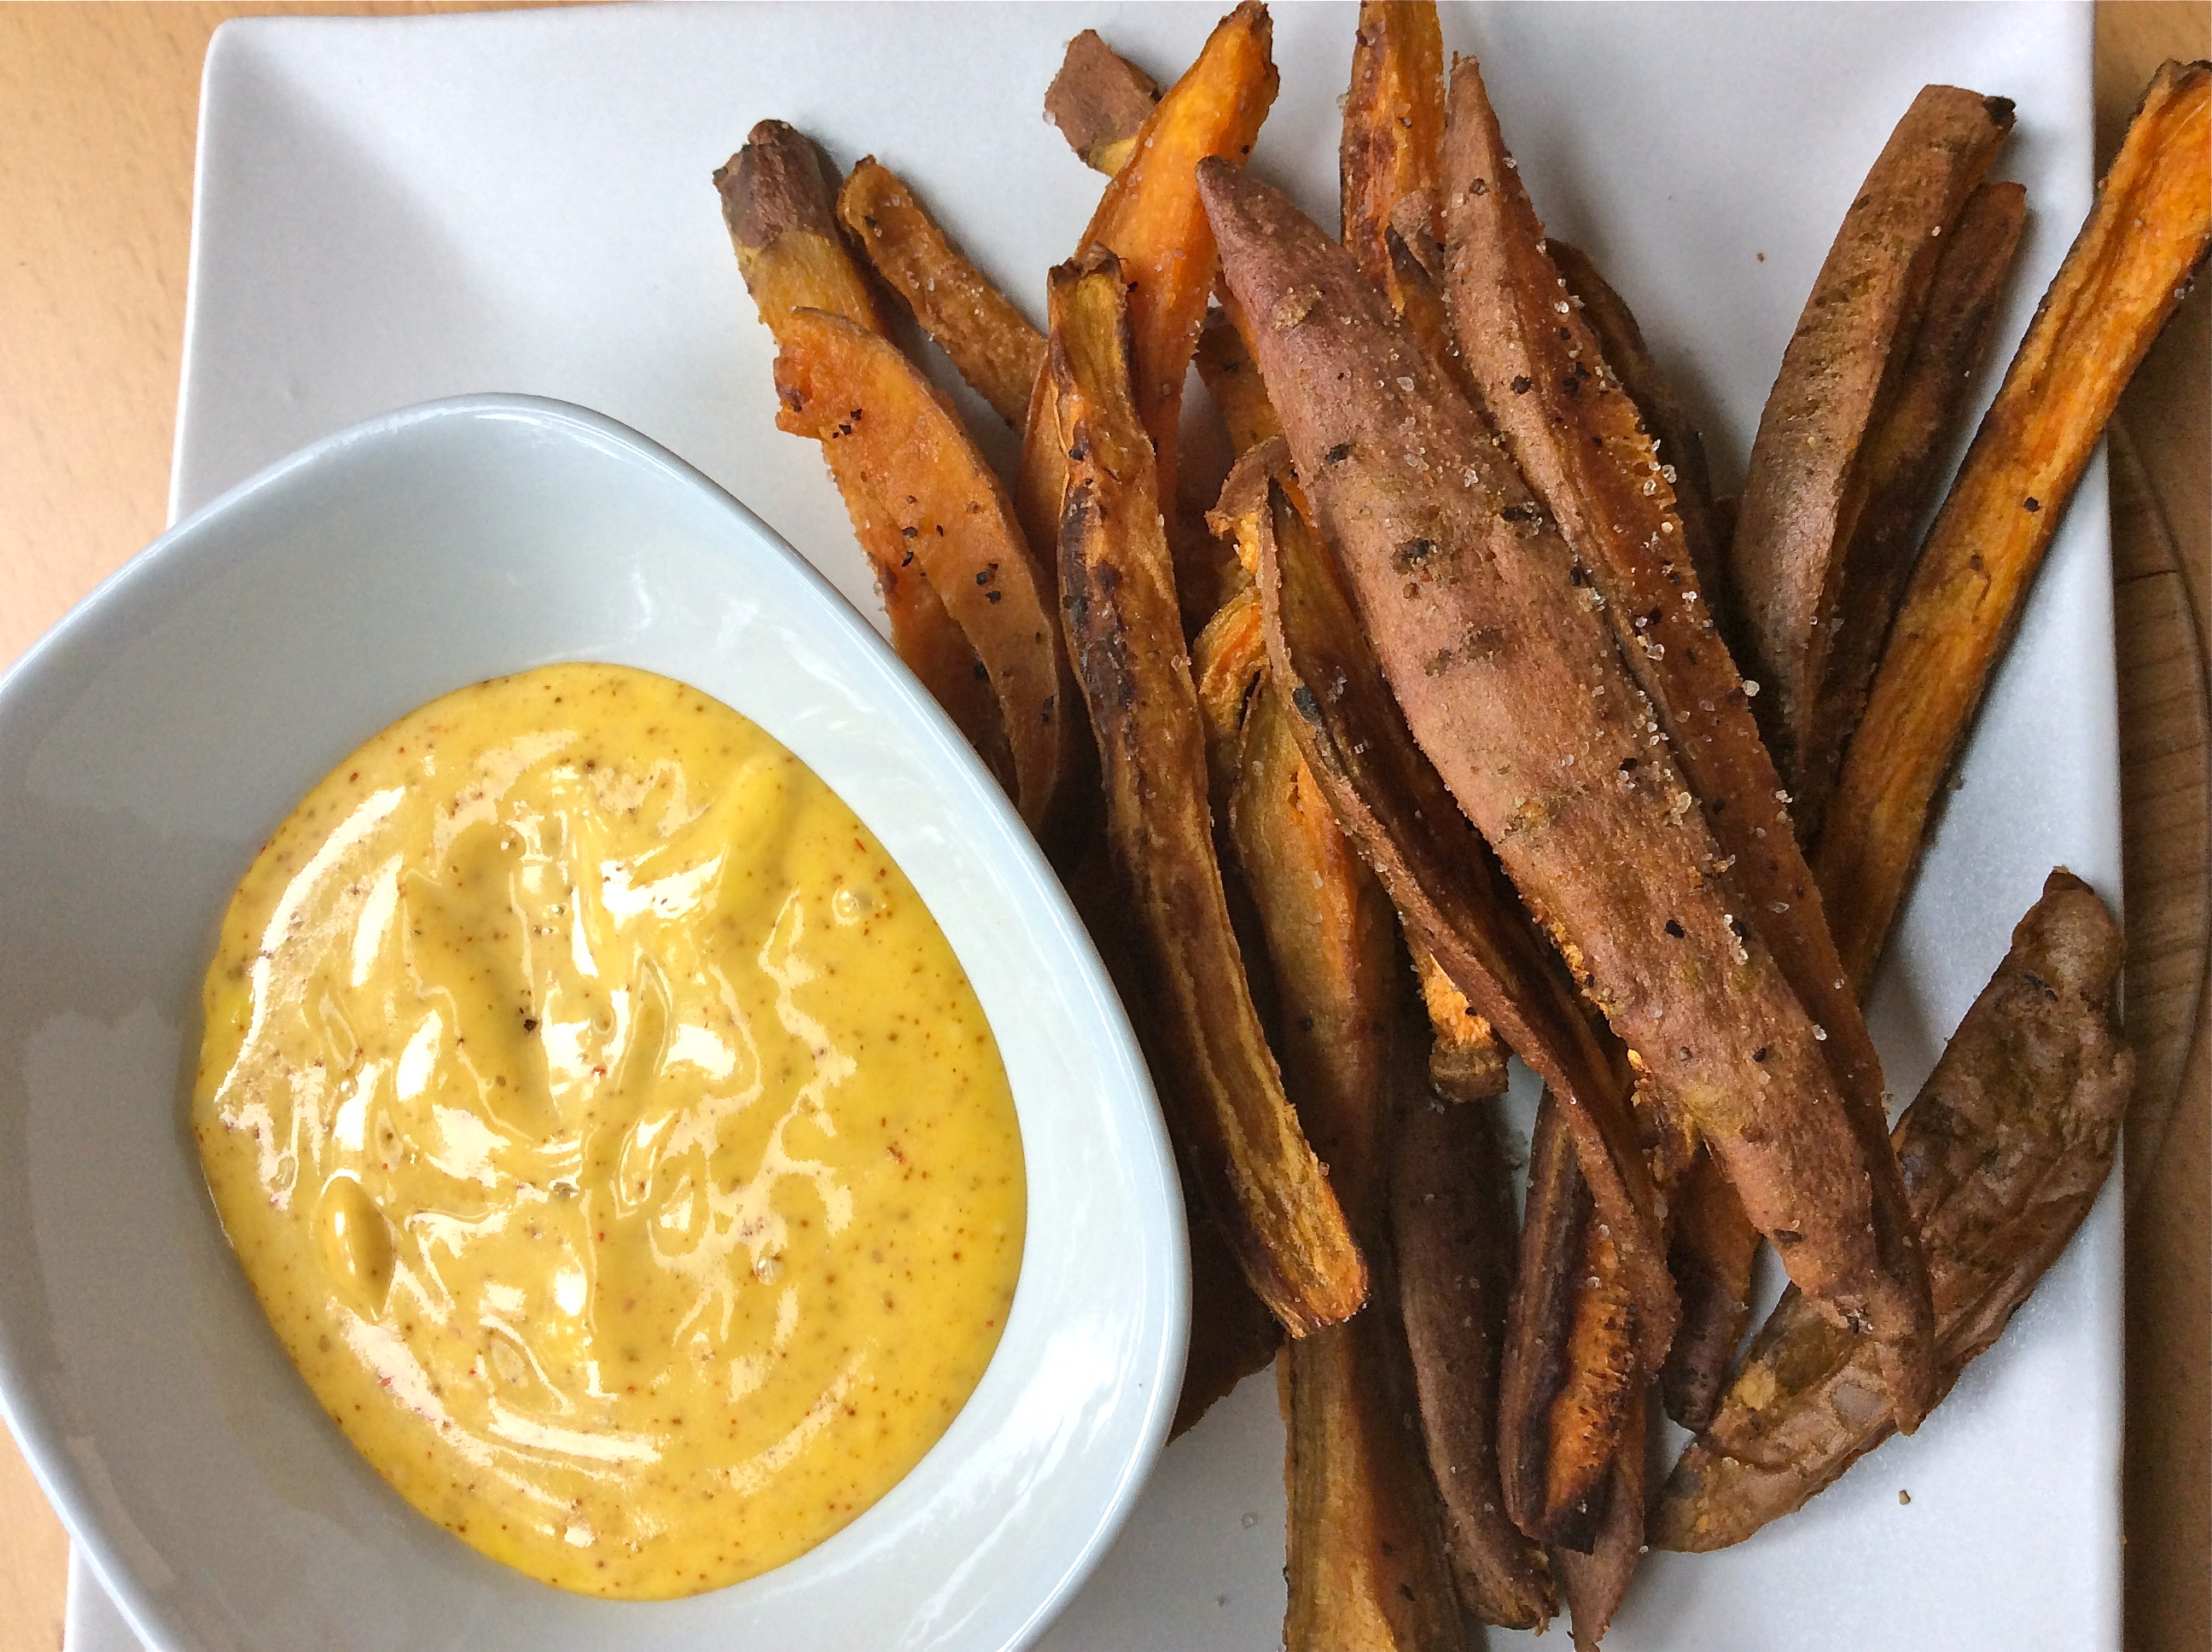 Sweet Potato Fries and Spicy Mayo